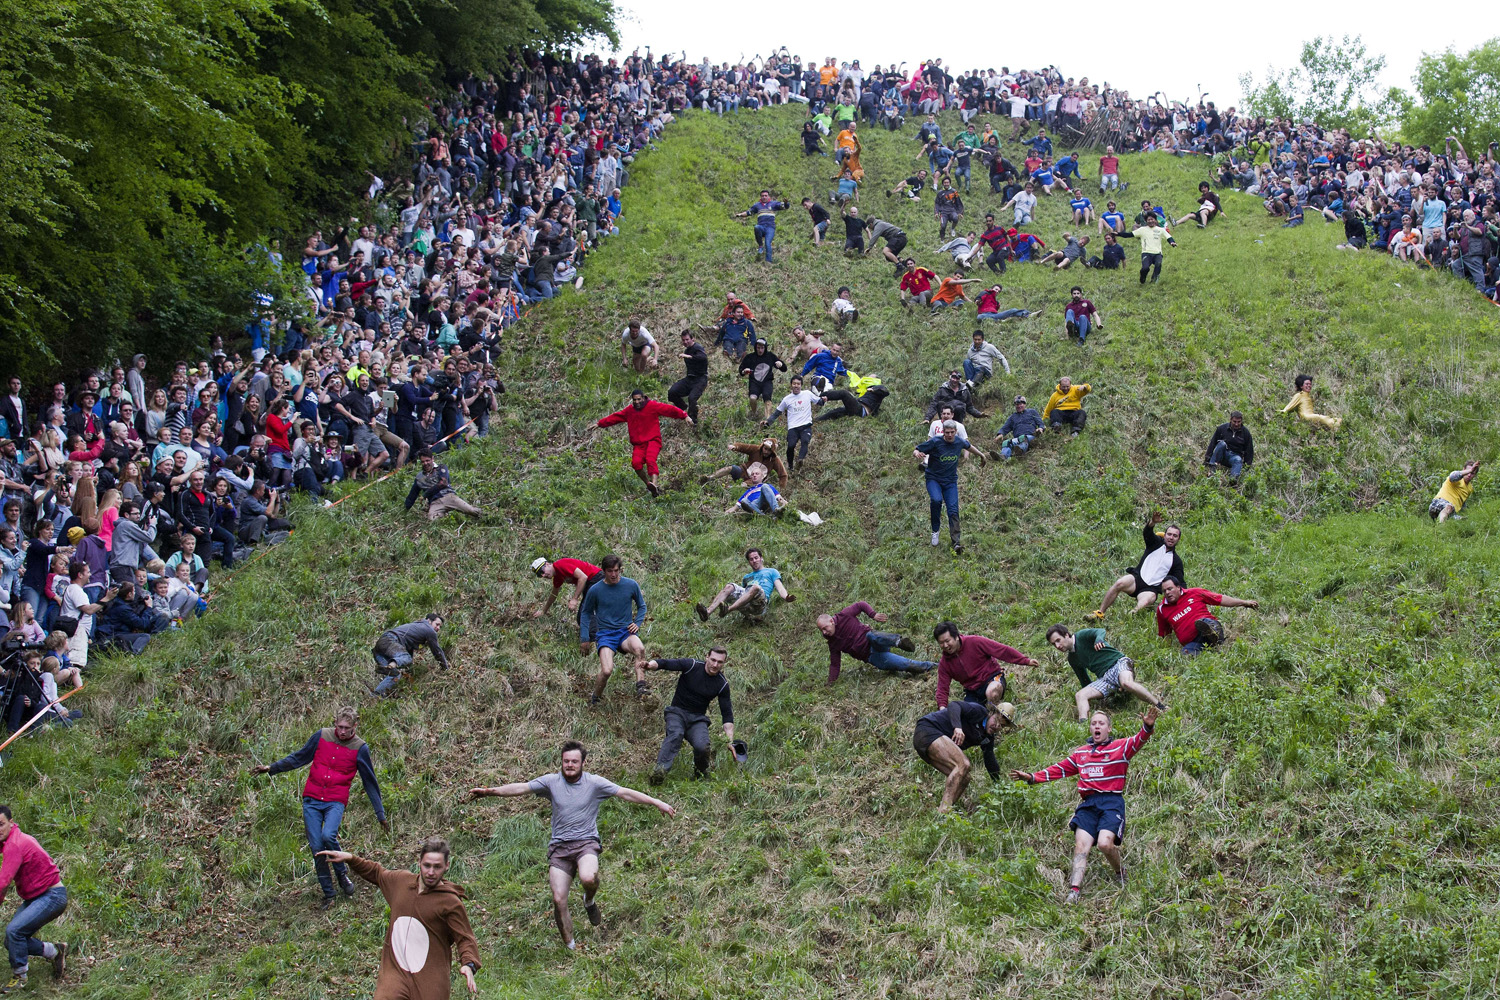 May 26, 2014. Competitors tumble down Coopers Hill in pursuit of a round Double Gloucester cheese during the annual cheese rolling and wake near the village of Brockworth near Gloucester in western England.